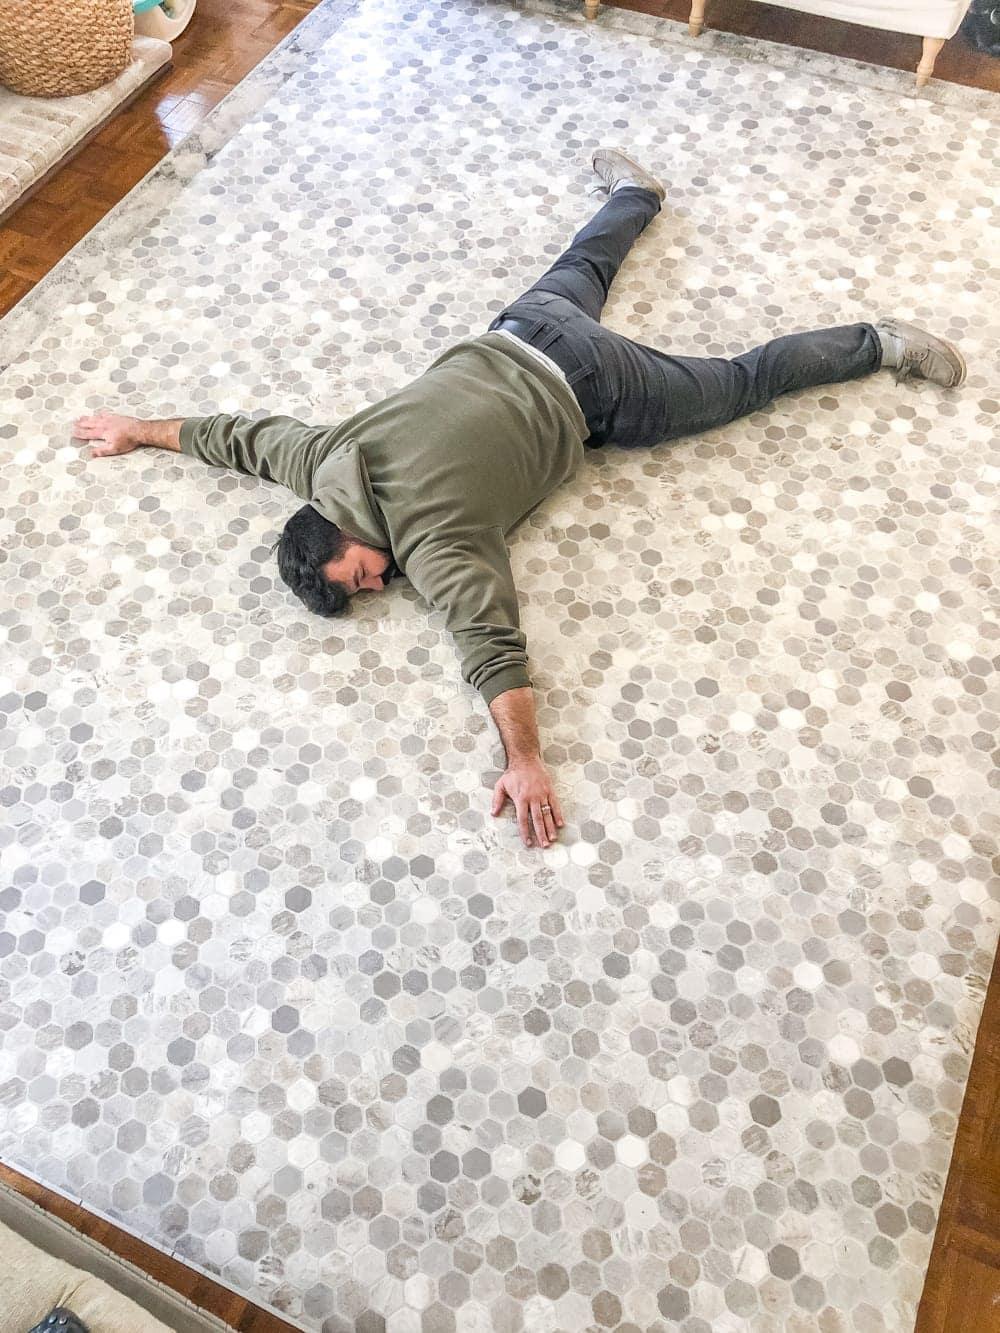 How to install sheet vinyl flooring over old tile   roll out your sheet vinyl